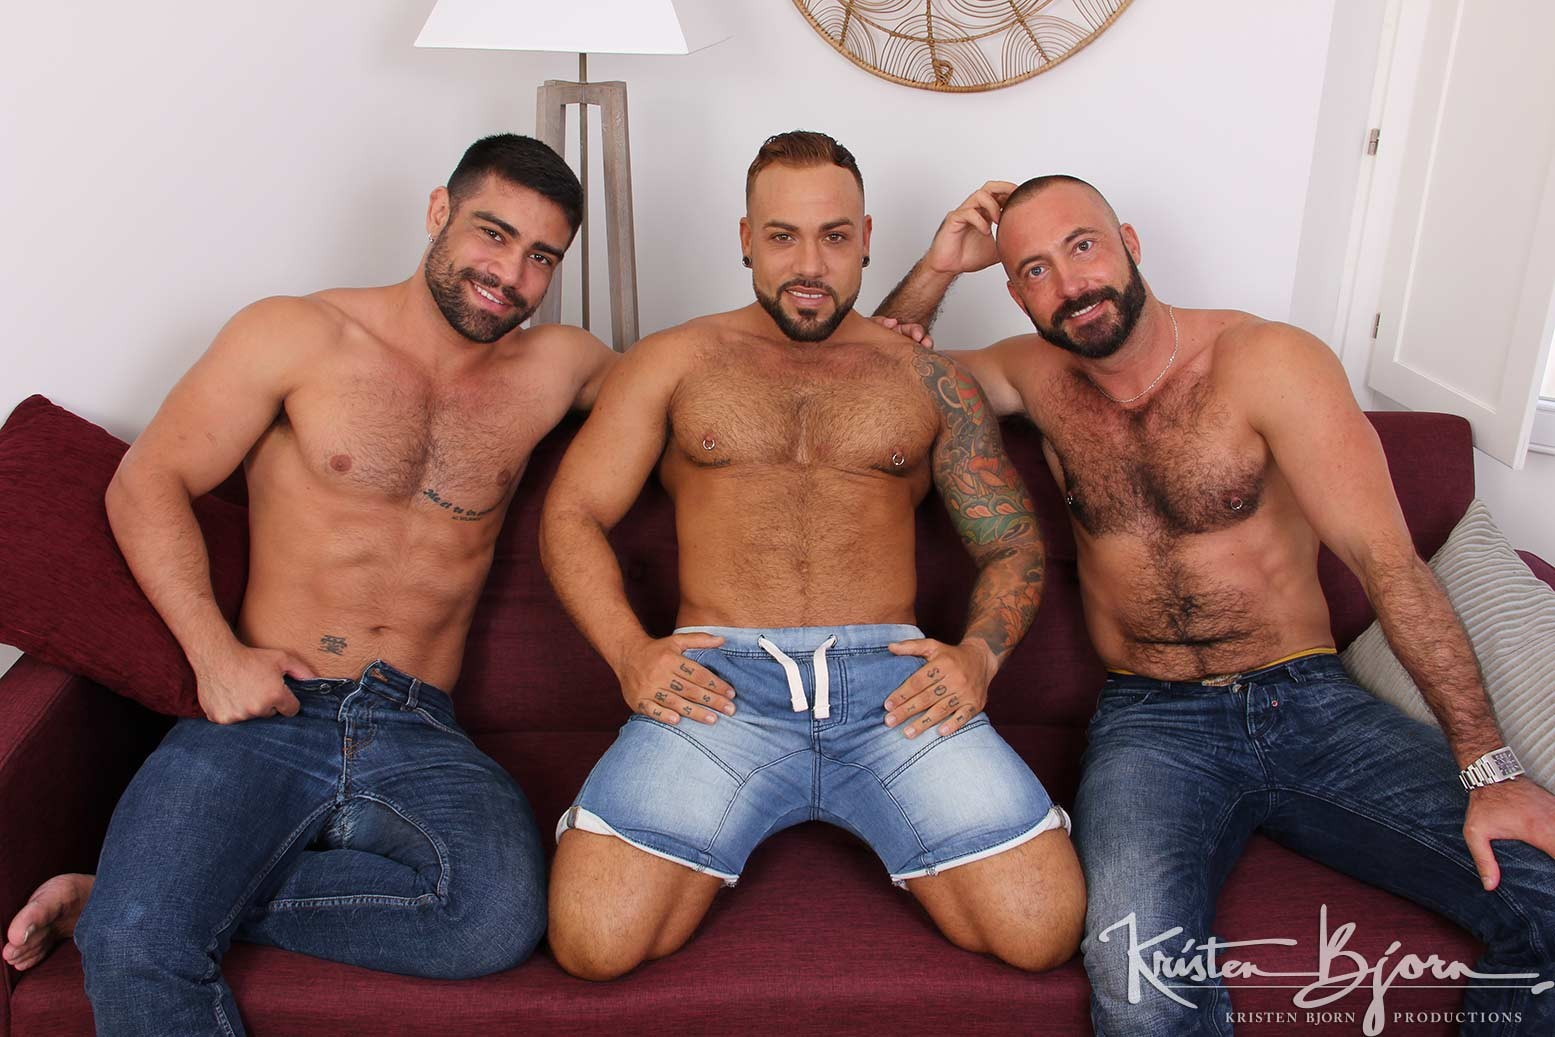 Hot Stuff: Deep And Tight – Wagner Vittoria, Sergi Rodriguez, Xavi Garcia